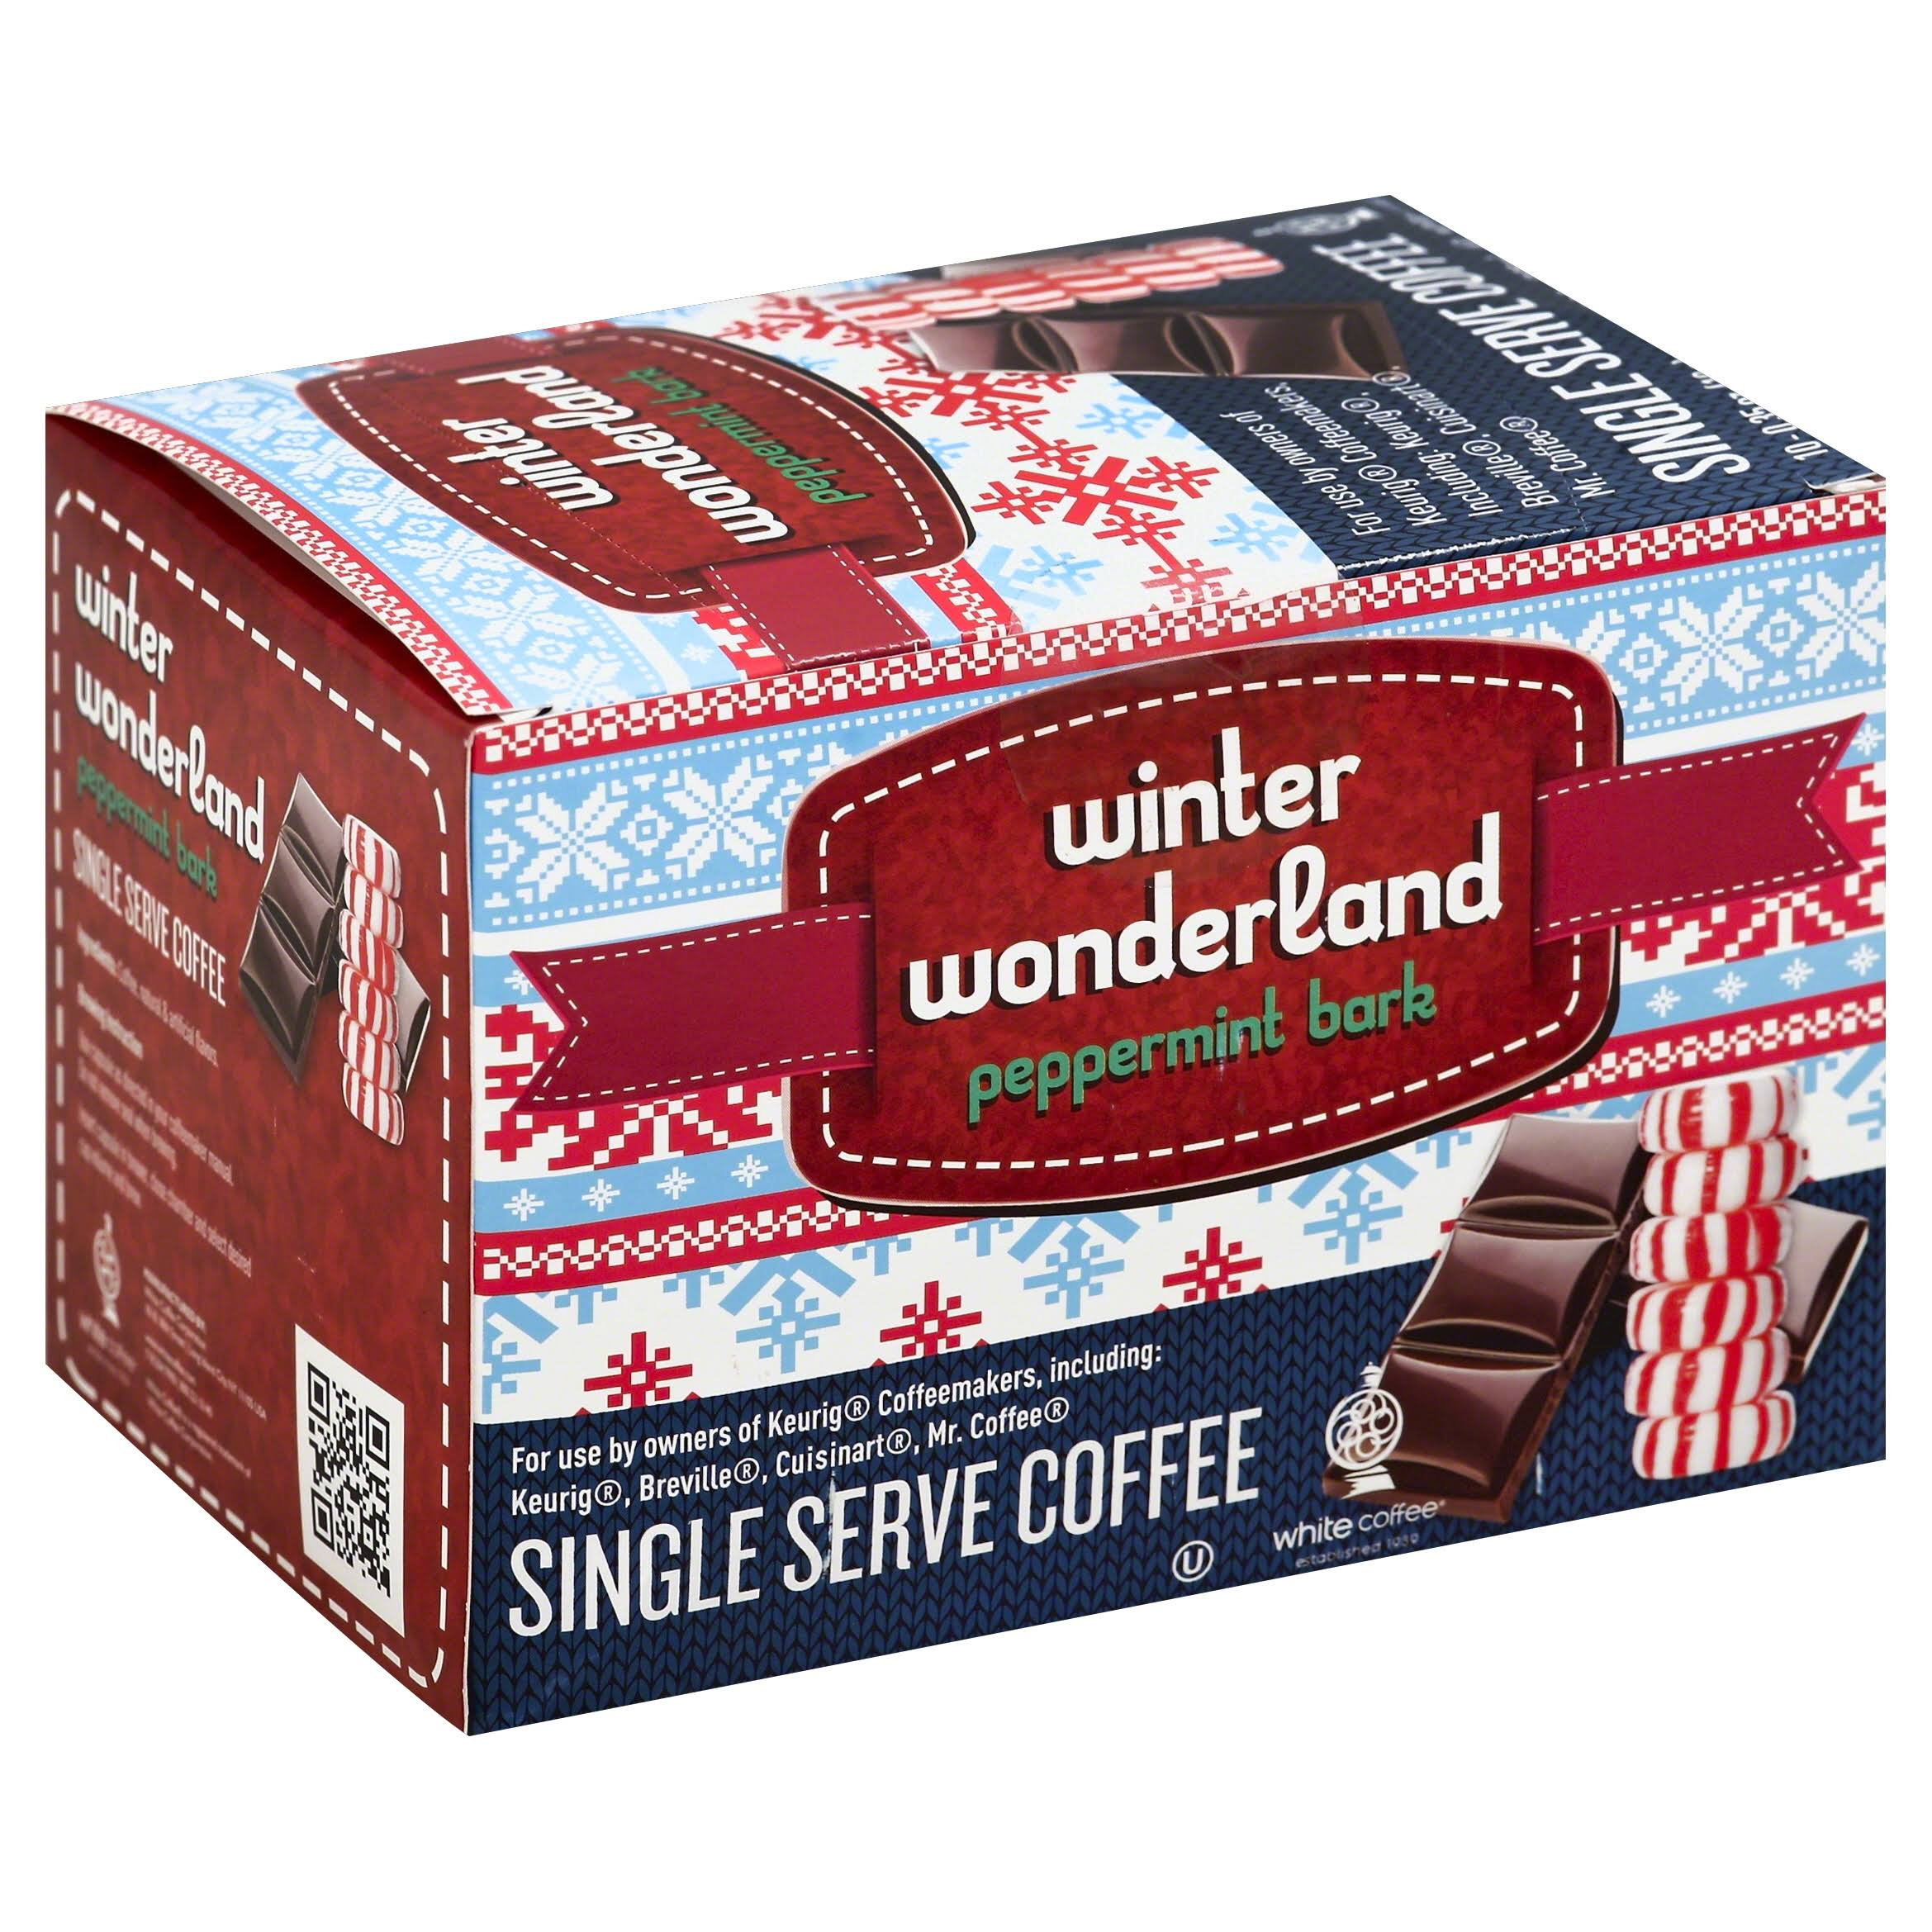 White Coffee Coffee, Winter Wonderland, Peppermint Bark, Single Serve Cups - 10 pack, 0.35 oz cups